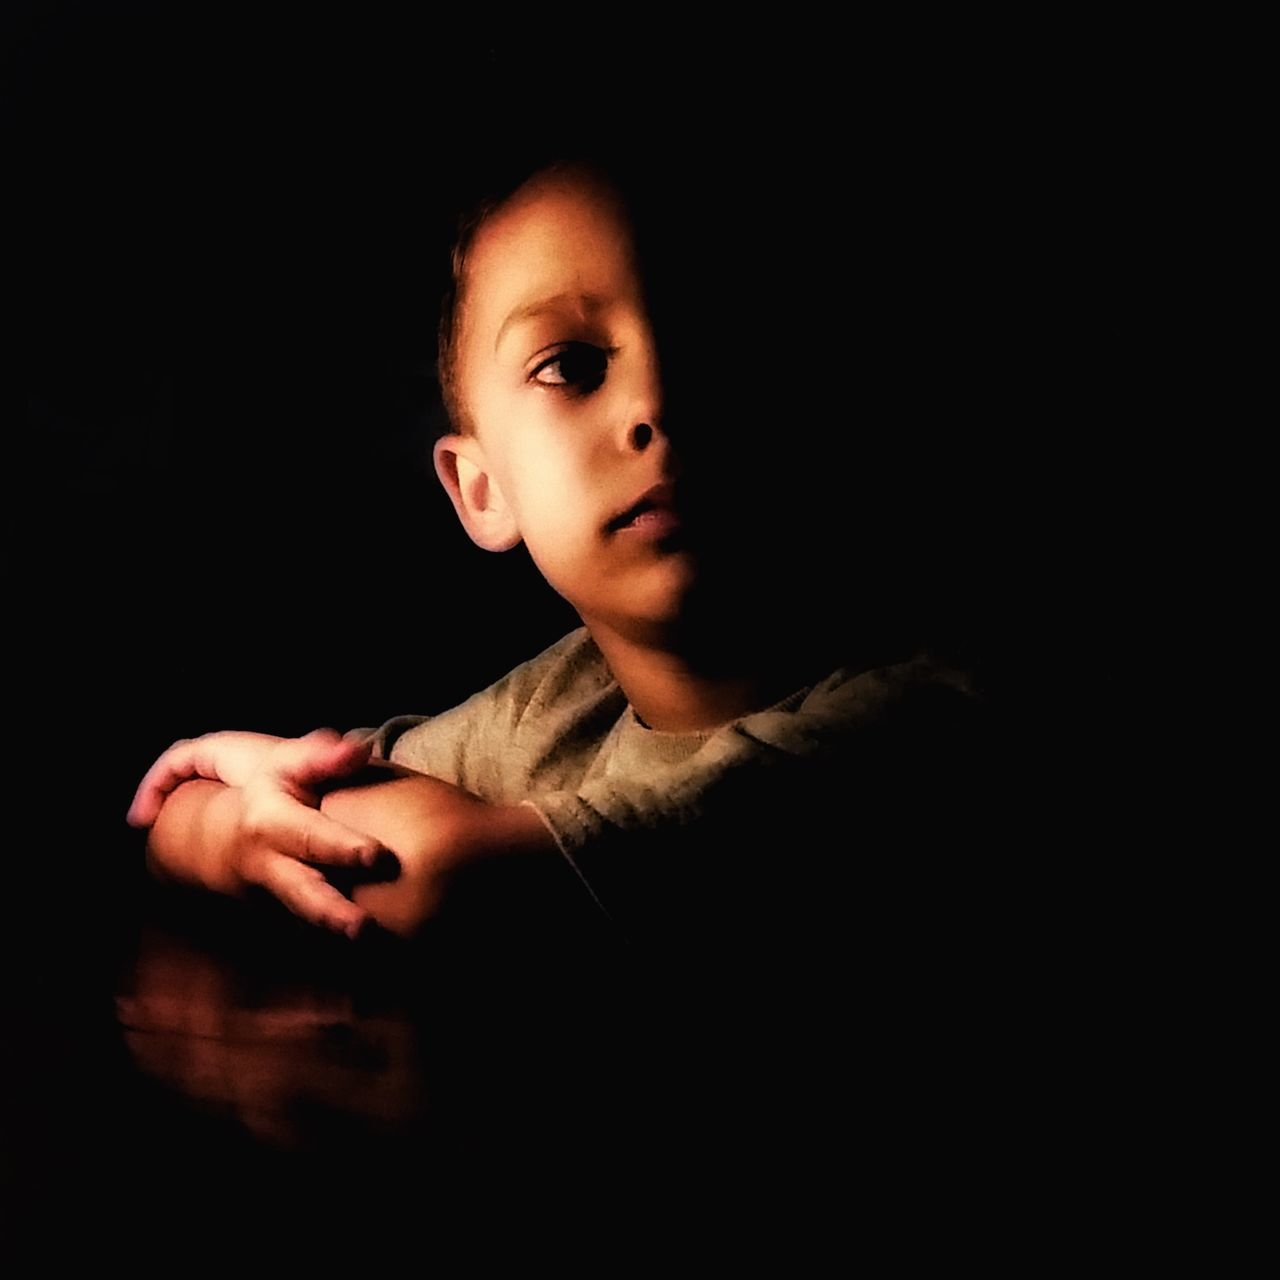 studio shot, black background, one person, portrait, indoors, childhood, child, looking at camera, copy space, headshot, cut out, dark, lifestyles, domestic room, boys, darkroom, innocence, looking, contemplation, teenager